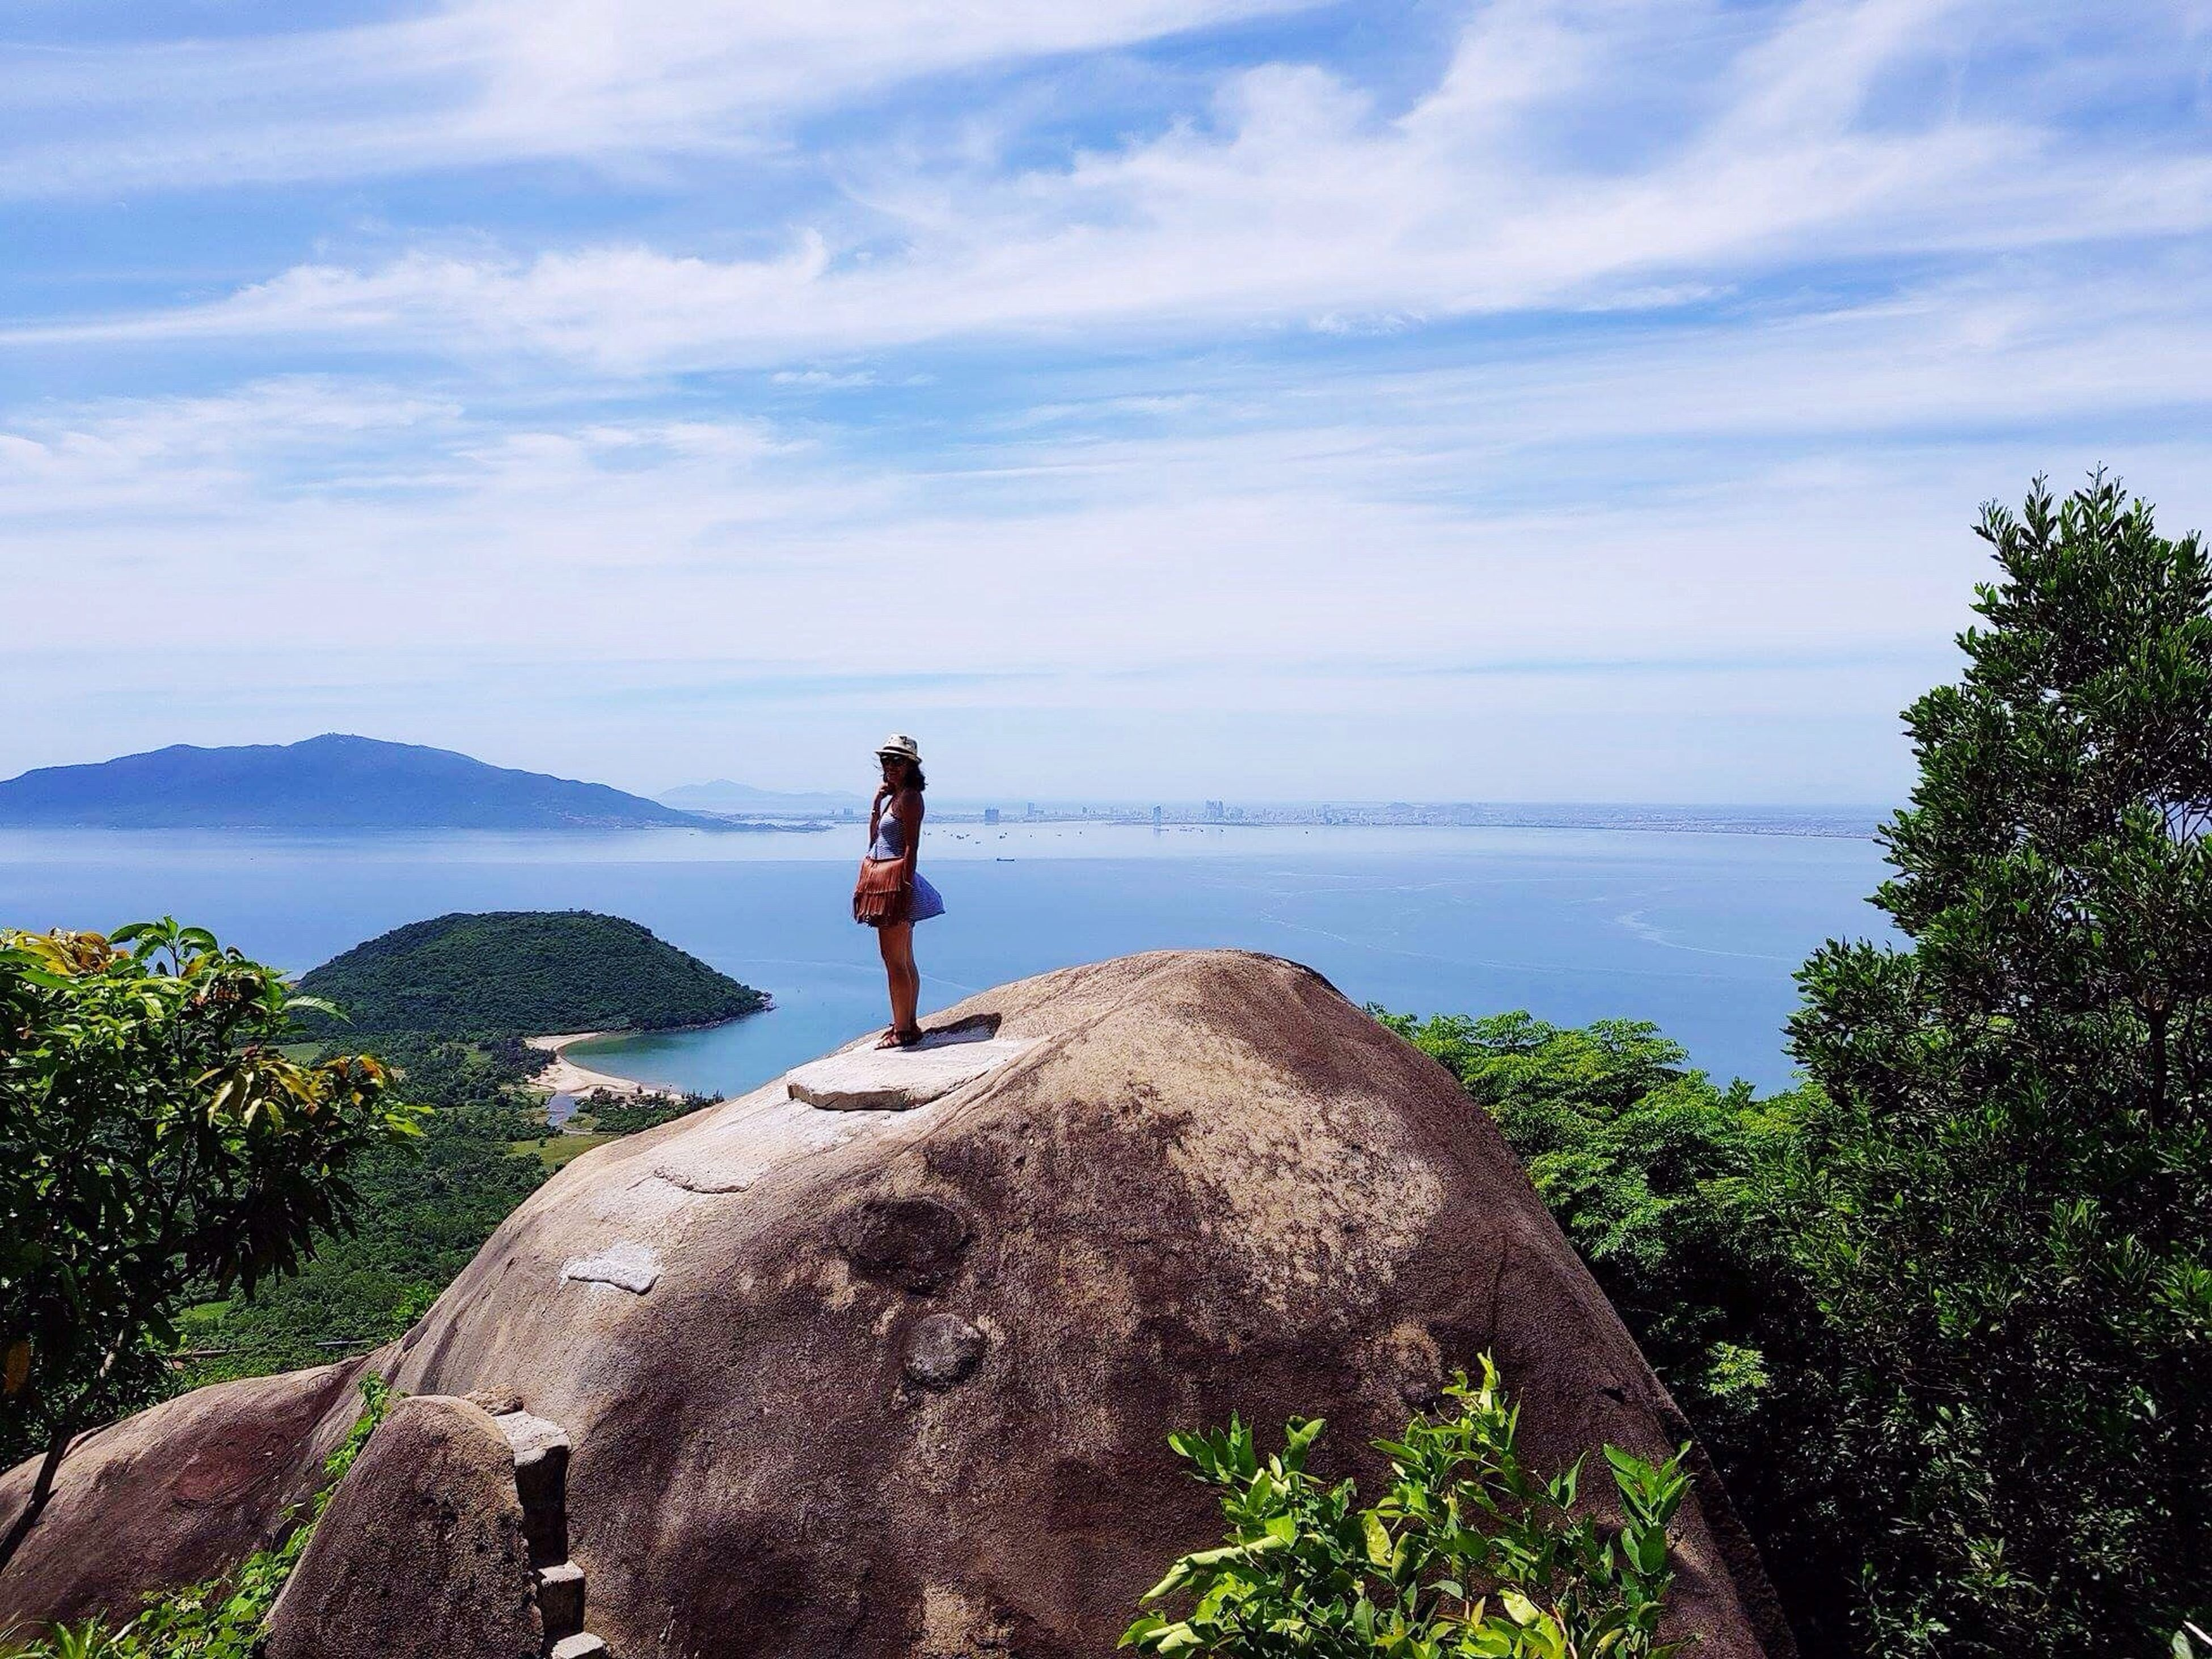 full length, one person, real people, rock - object, sky, nature, scenics, leisure activity, beauty in nature, water, day, sea, standing, cloud - sky, tranquility, rear view, tranquil scene, outdoors, lifestyles, tree, horizon over water, mountain, cliff, adventure, men, young women, young adult, people